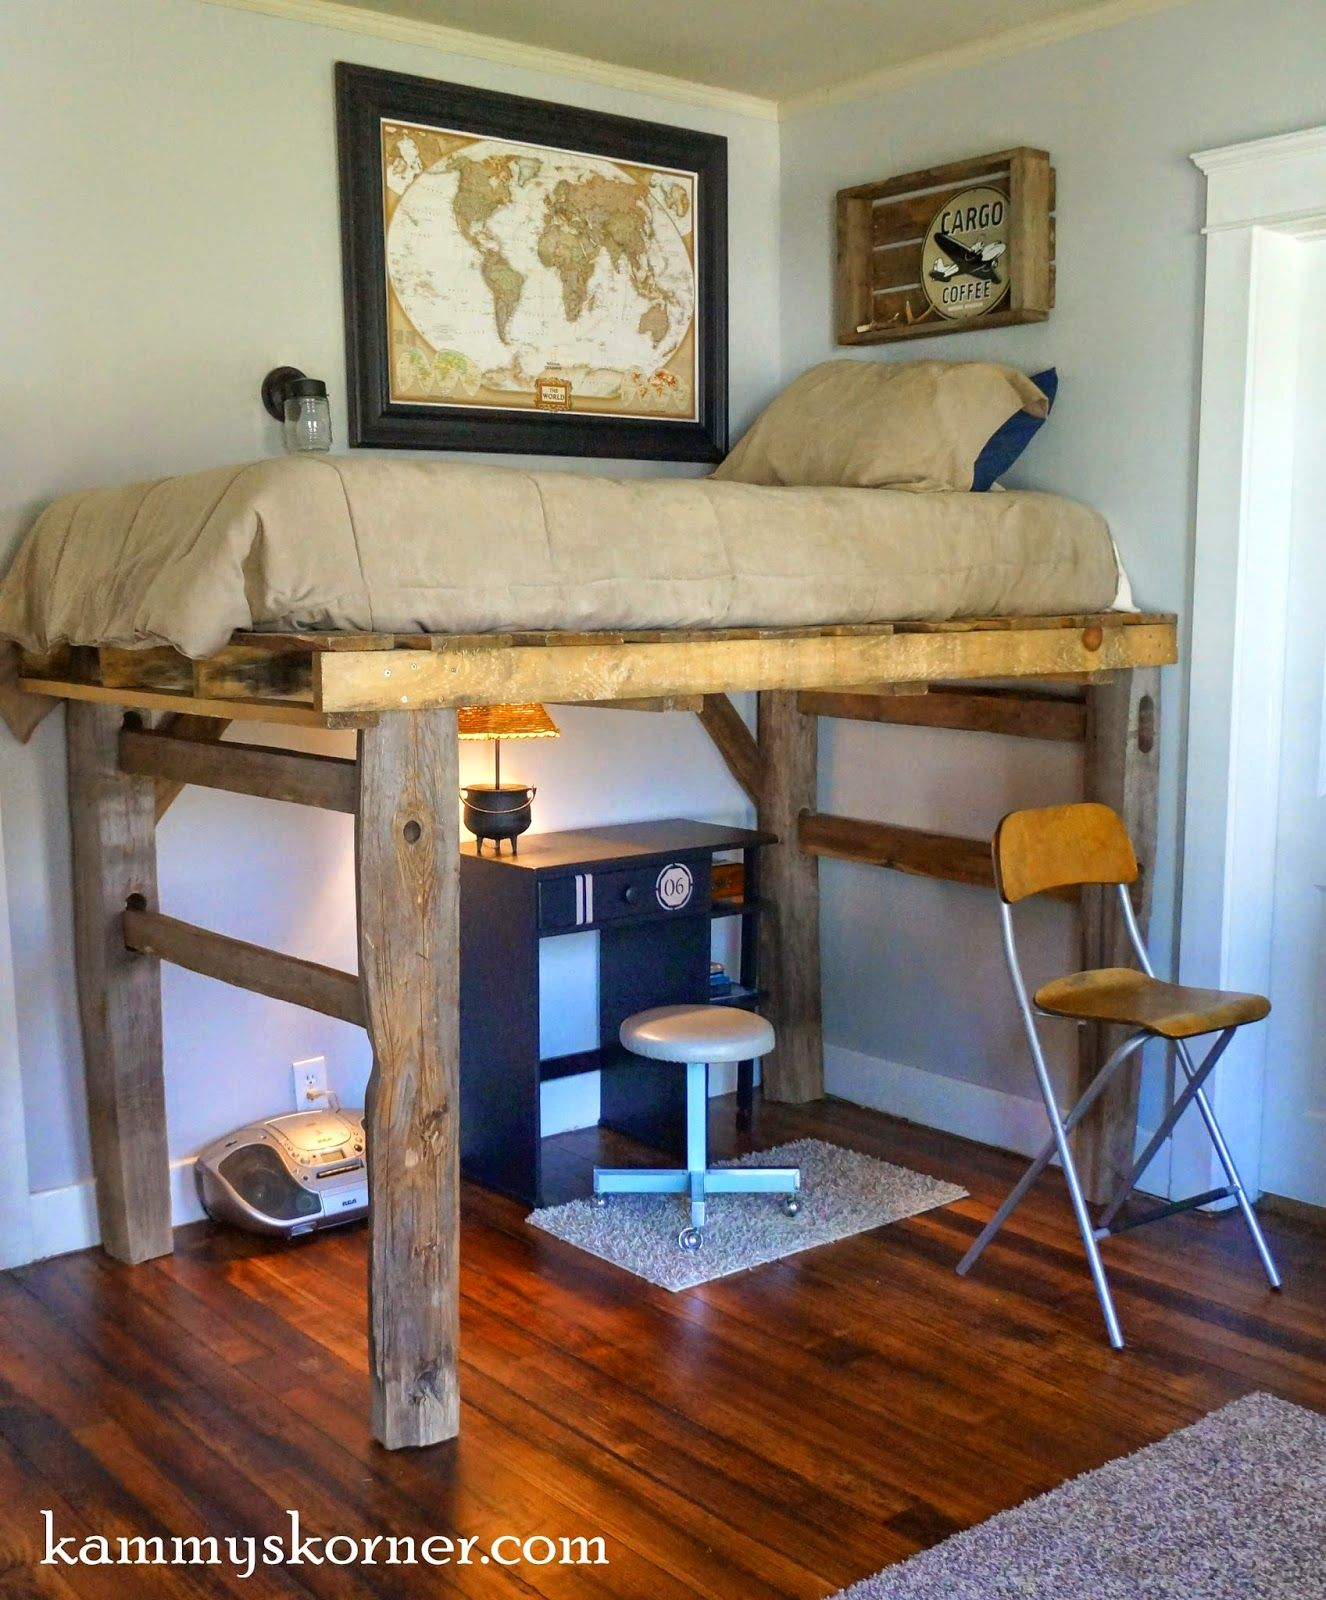 Loft bed with desk and chair  Kammyus Korner Fence Posts Plus A Pallet Equals  Do It